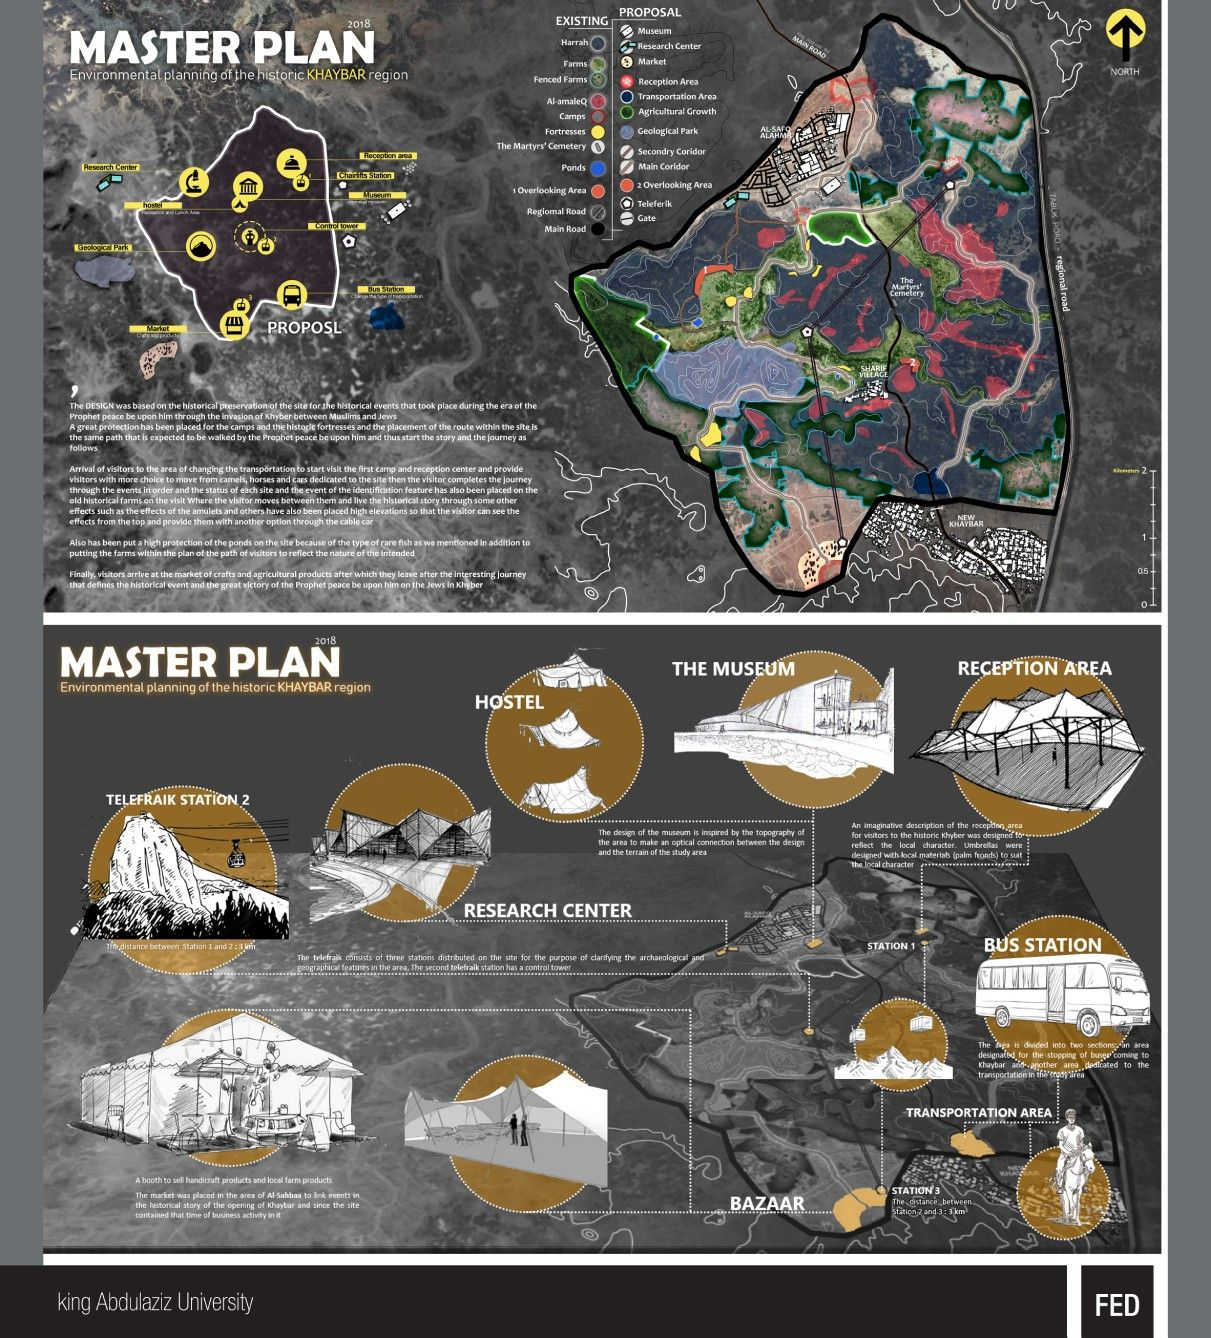 Khyber Historical and Nature Reserve Master Plan